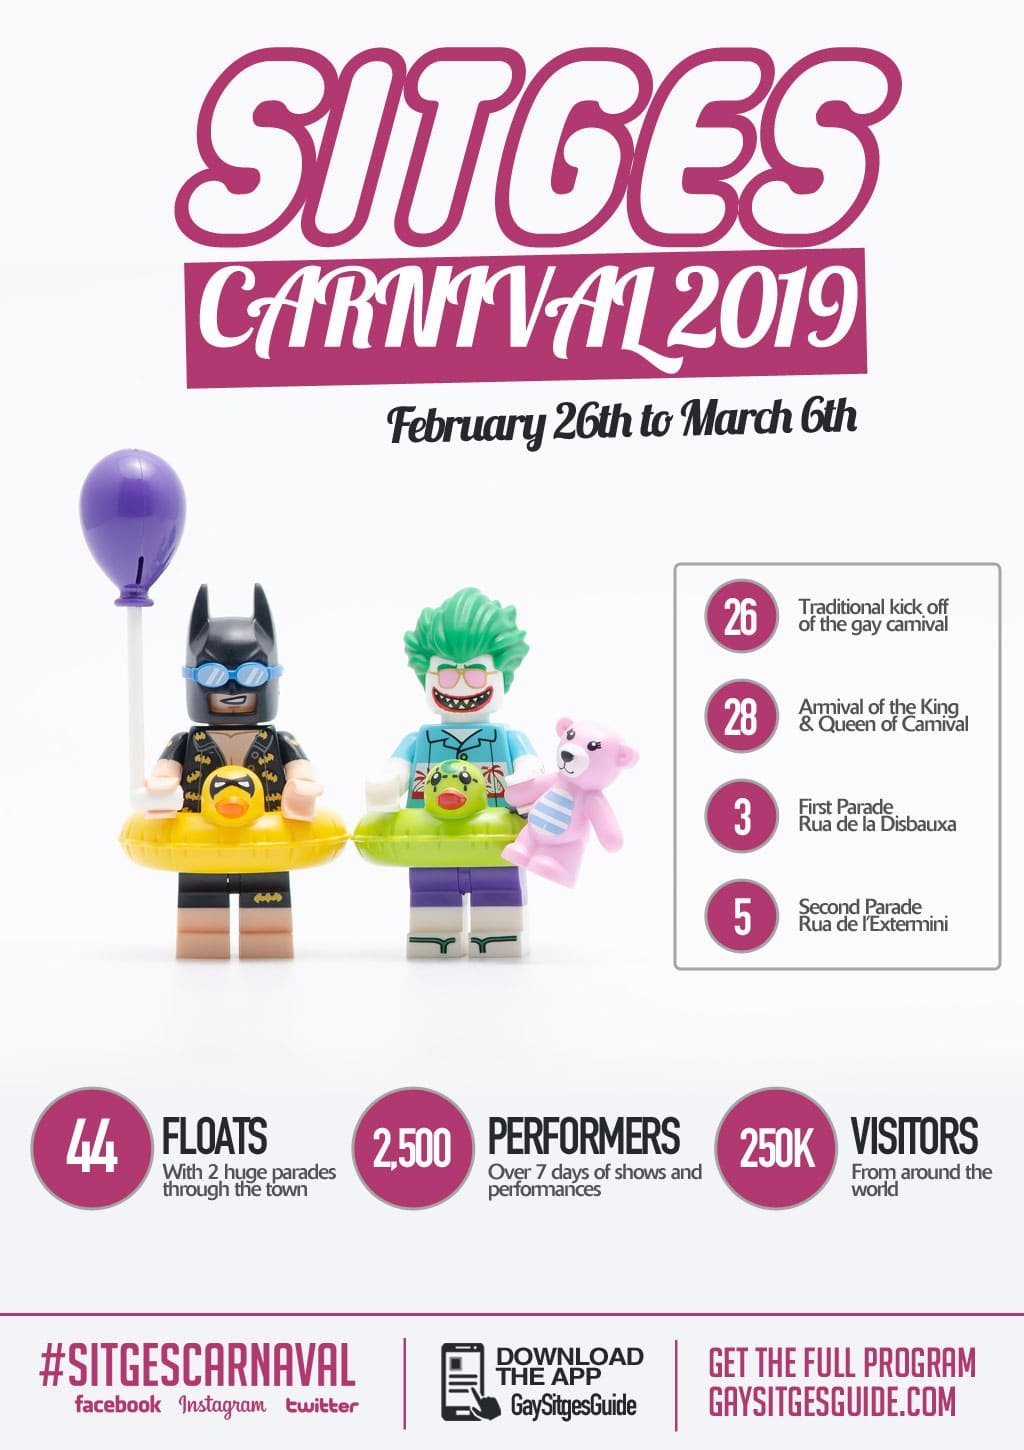 Sitges Carnival 2019 - By the numbers!